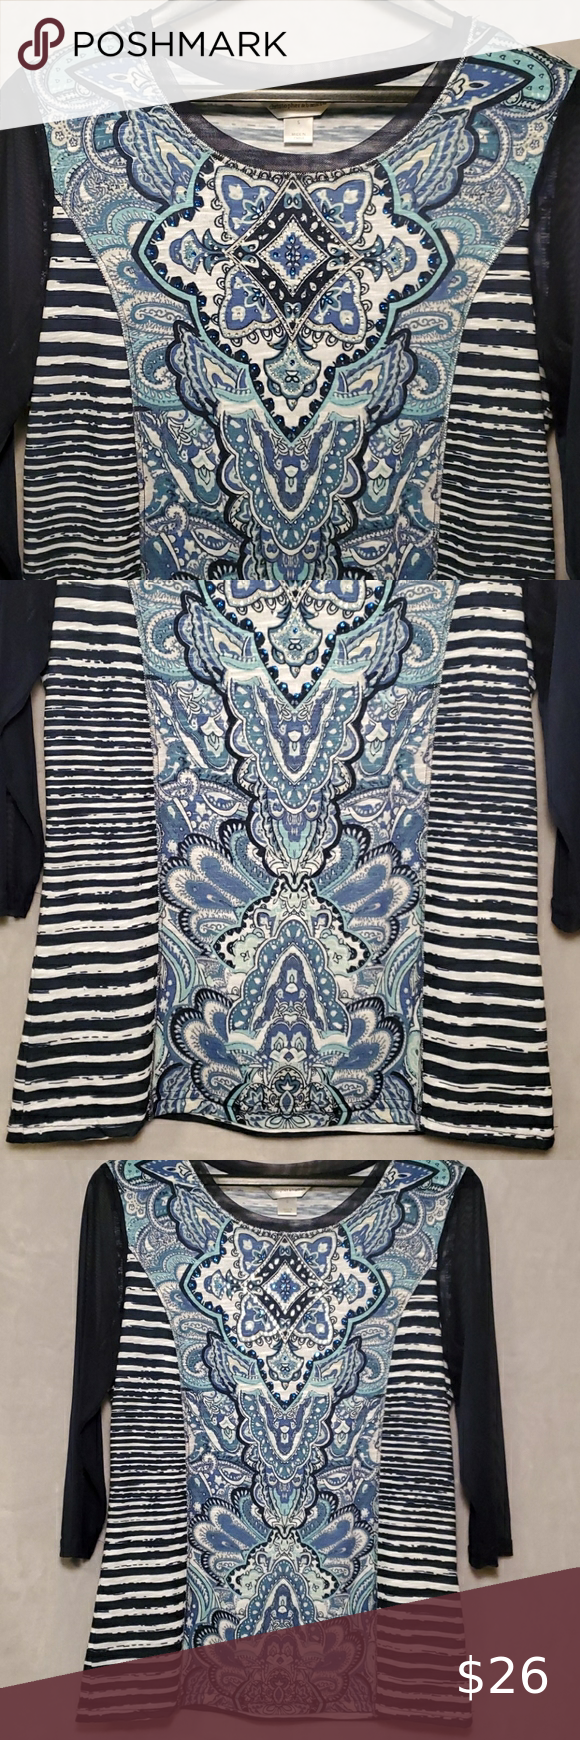 CHRISTOPHER & BANKS▪︎Top Like New! Beautiful top in white and navy stripes with blue paisley pattern down the front. Sequence on top. Sheer 3/4